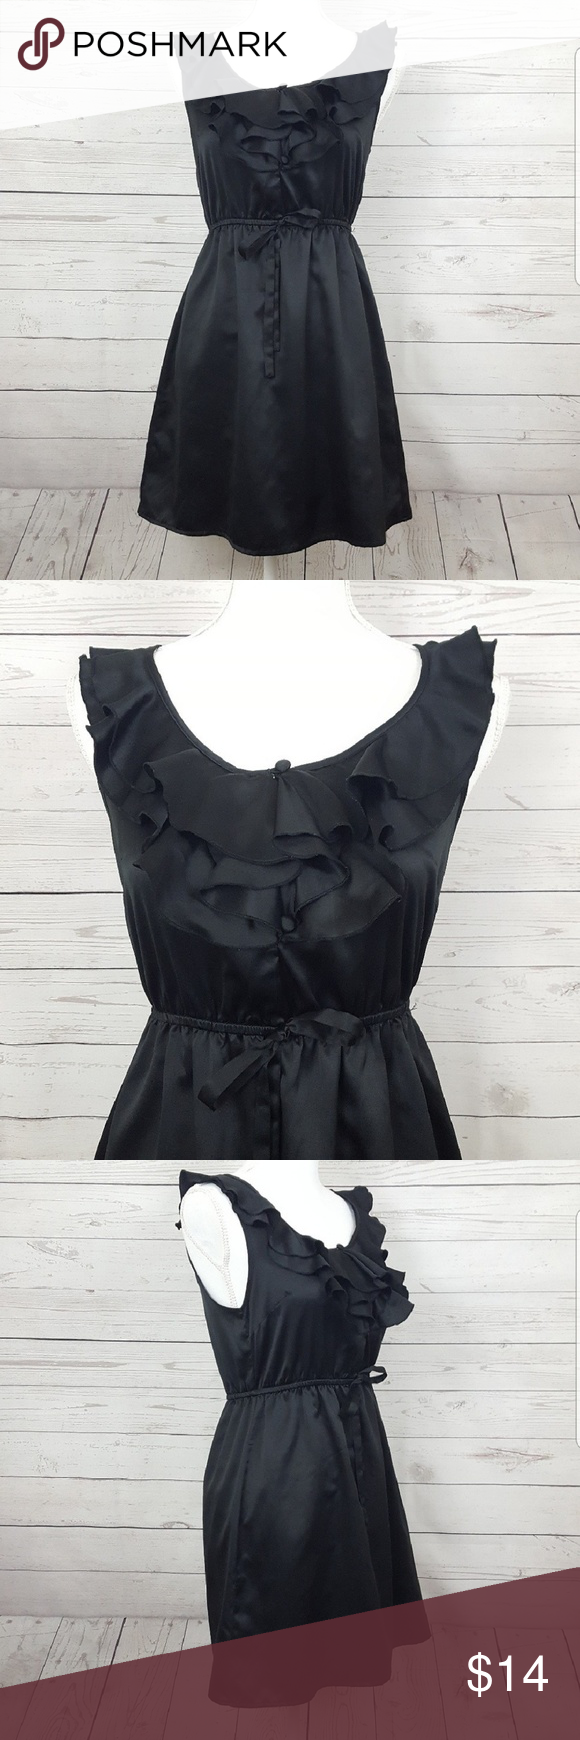 F21 Black Dress With Ruffled Chest Forever 21 Essentials Little Black Dress With Ruffles Along The Neckline In Excellent Dresses Black Satin Dress Black Dress [ 1740 x 580 Pixel ]